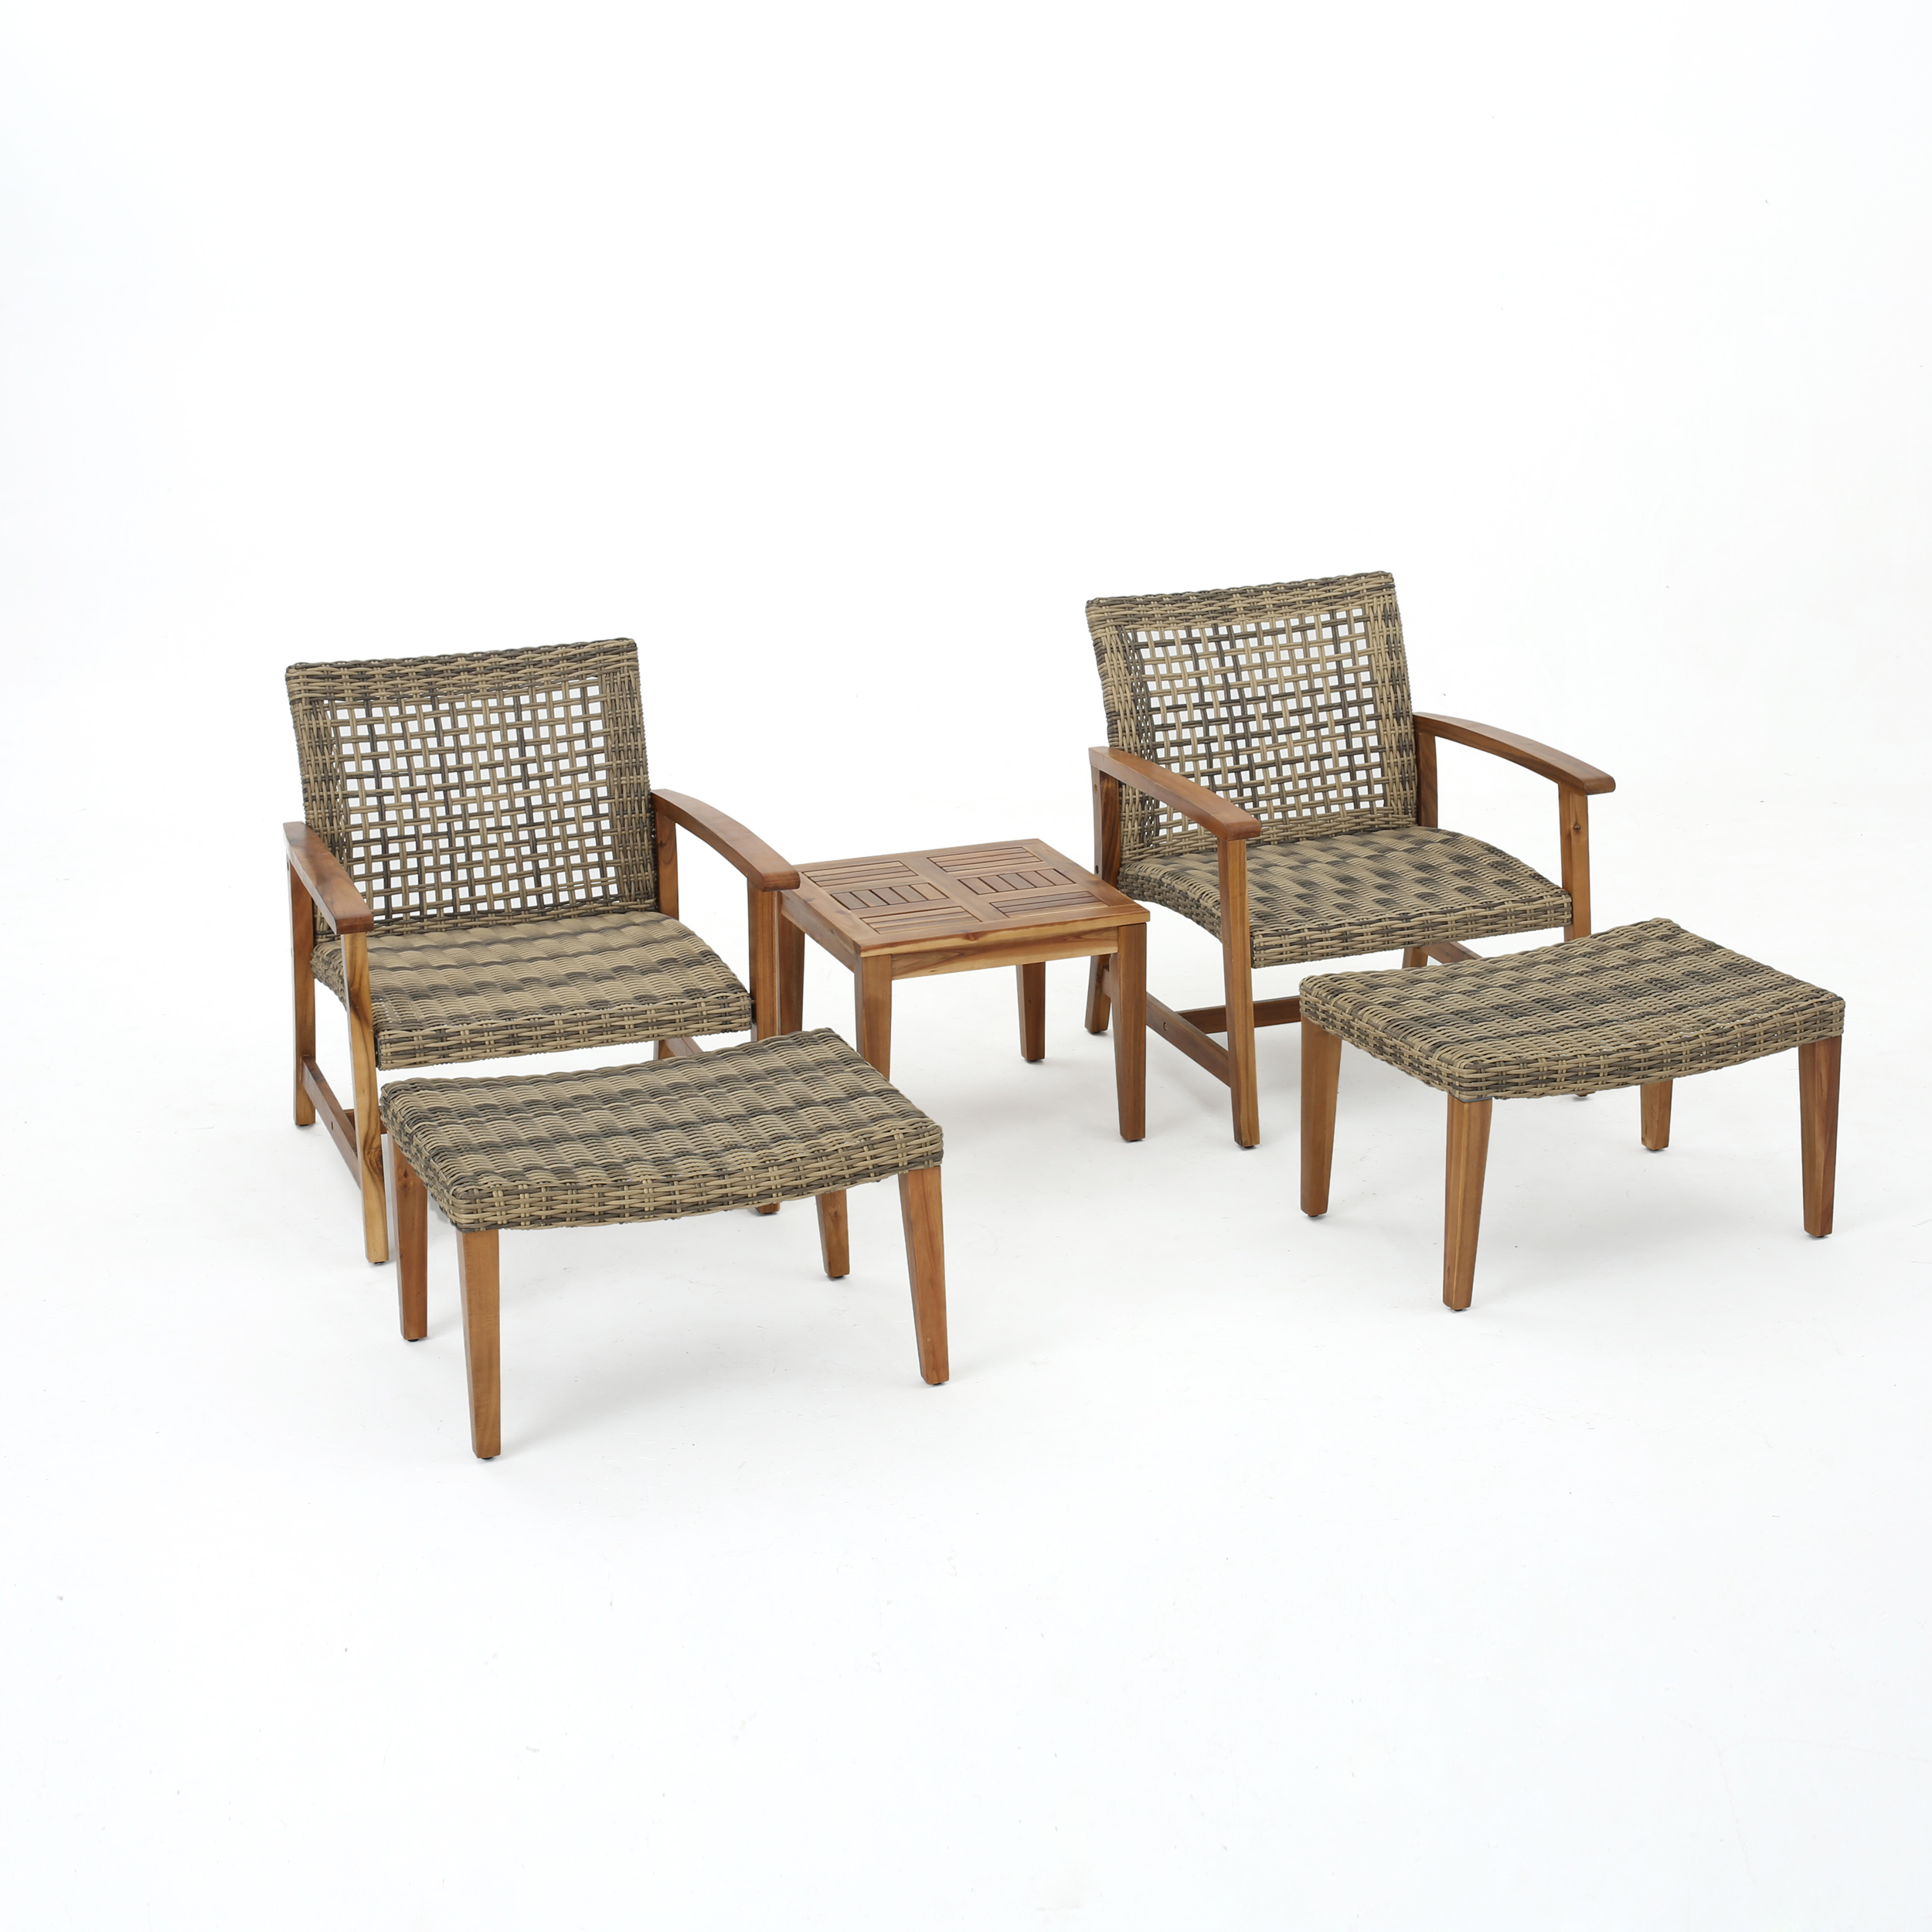 Savannah Outdoor Mid Century 5 Piece Grey Wicker Chat Set With Acacia Wood  Frame, Natural